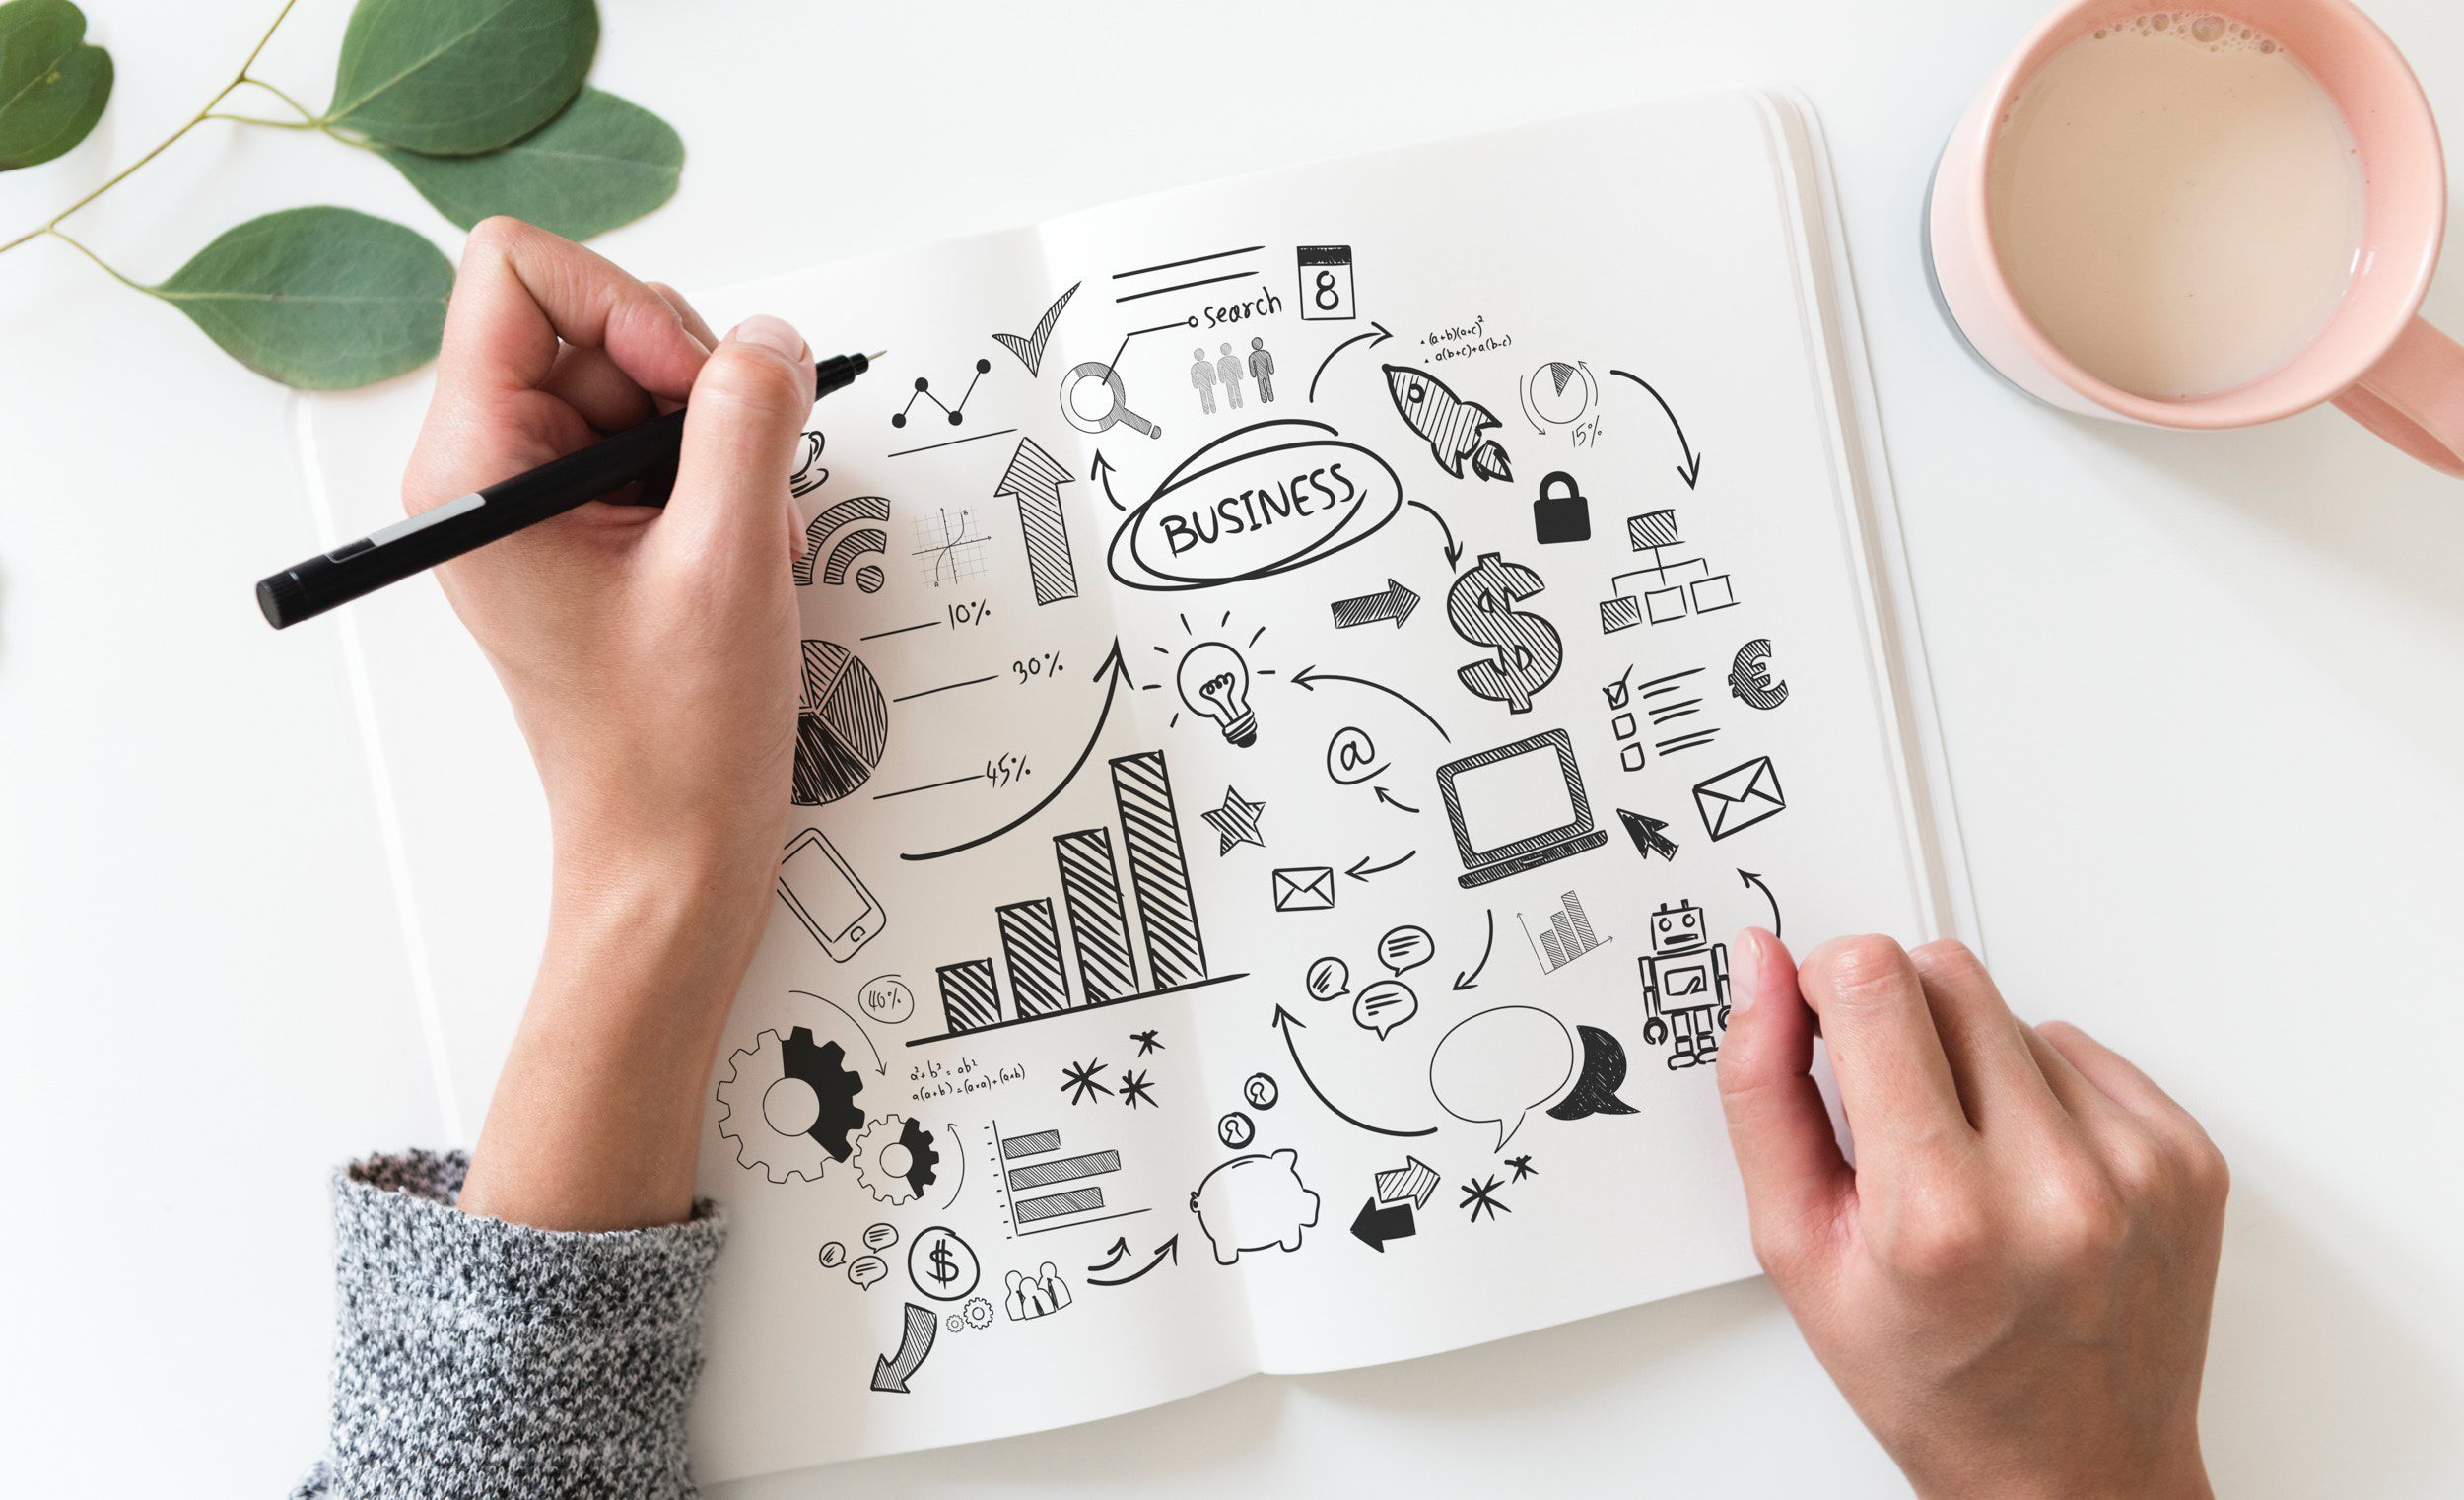 A person sketching icons and other graphics in a notebook with a pen. Visuals such as these can help improve your blogging as well.